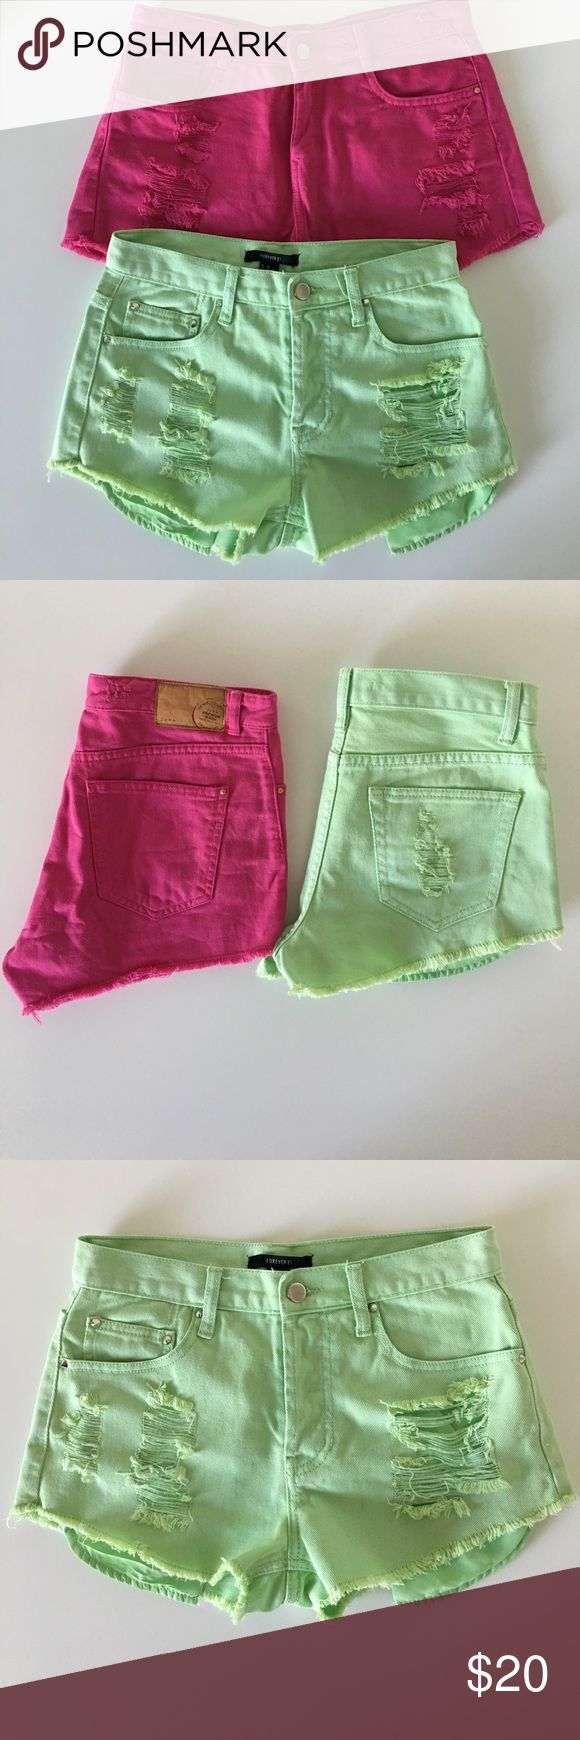 Bundle Two High-Waist Jean Shorts Bundle of two items. Color: Pistachio Green, Brand: Forever21, Size: 26, High-Waisted Jean Shorts with ripped pockets and fringed cut off edge. Front button-up with front and back pockets with studs detail. Color: Hot Pink, Brand: Zara, Size: 26, front button and zipper, front and back pockets, High-Waisted Jean Shorts with ripped pockets and fringed cut off edge. Good Used Condition. Shorts Jean Shorts